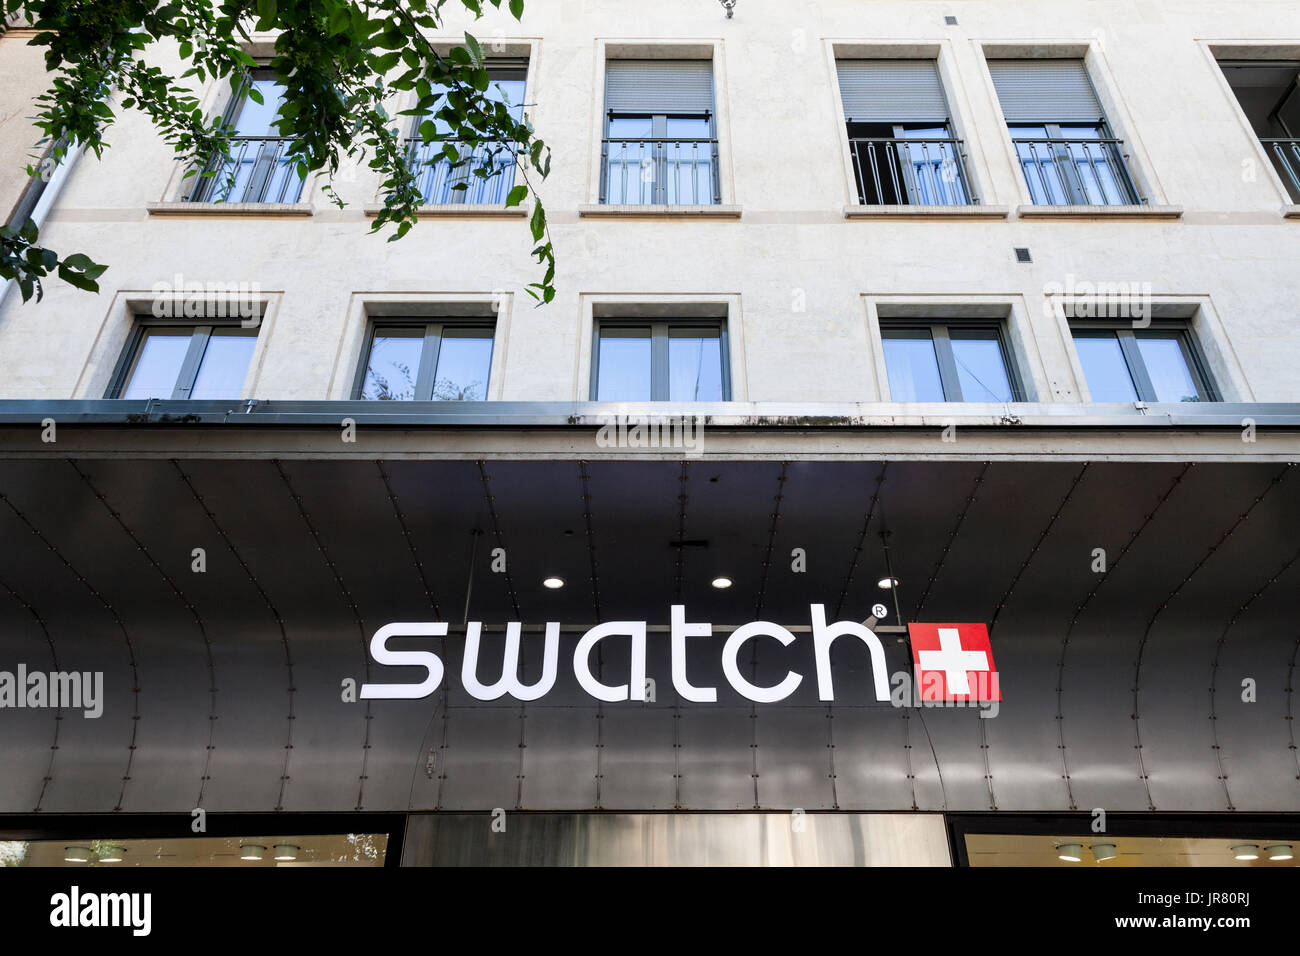 GENEVA, SWITZERLAND - JUNE 19, 2017: Swatch logo on the main store of the brand in Geneva. Swatch is one of the most famous watch manufacturers in Swi - Stock Image